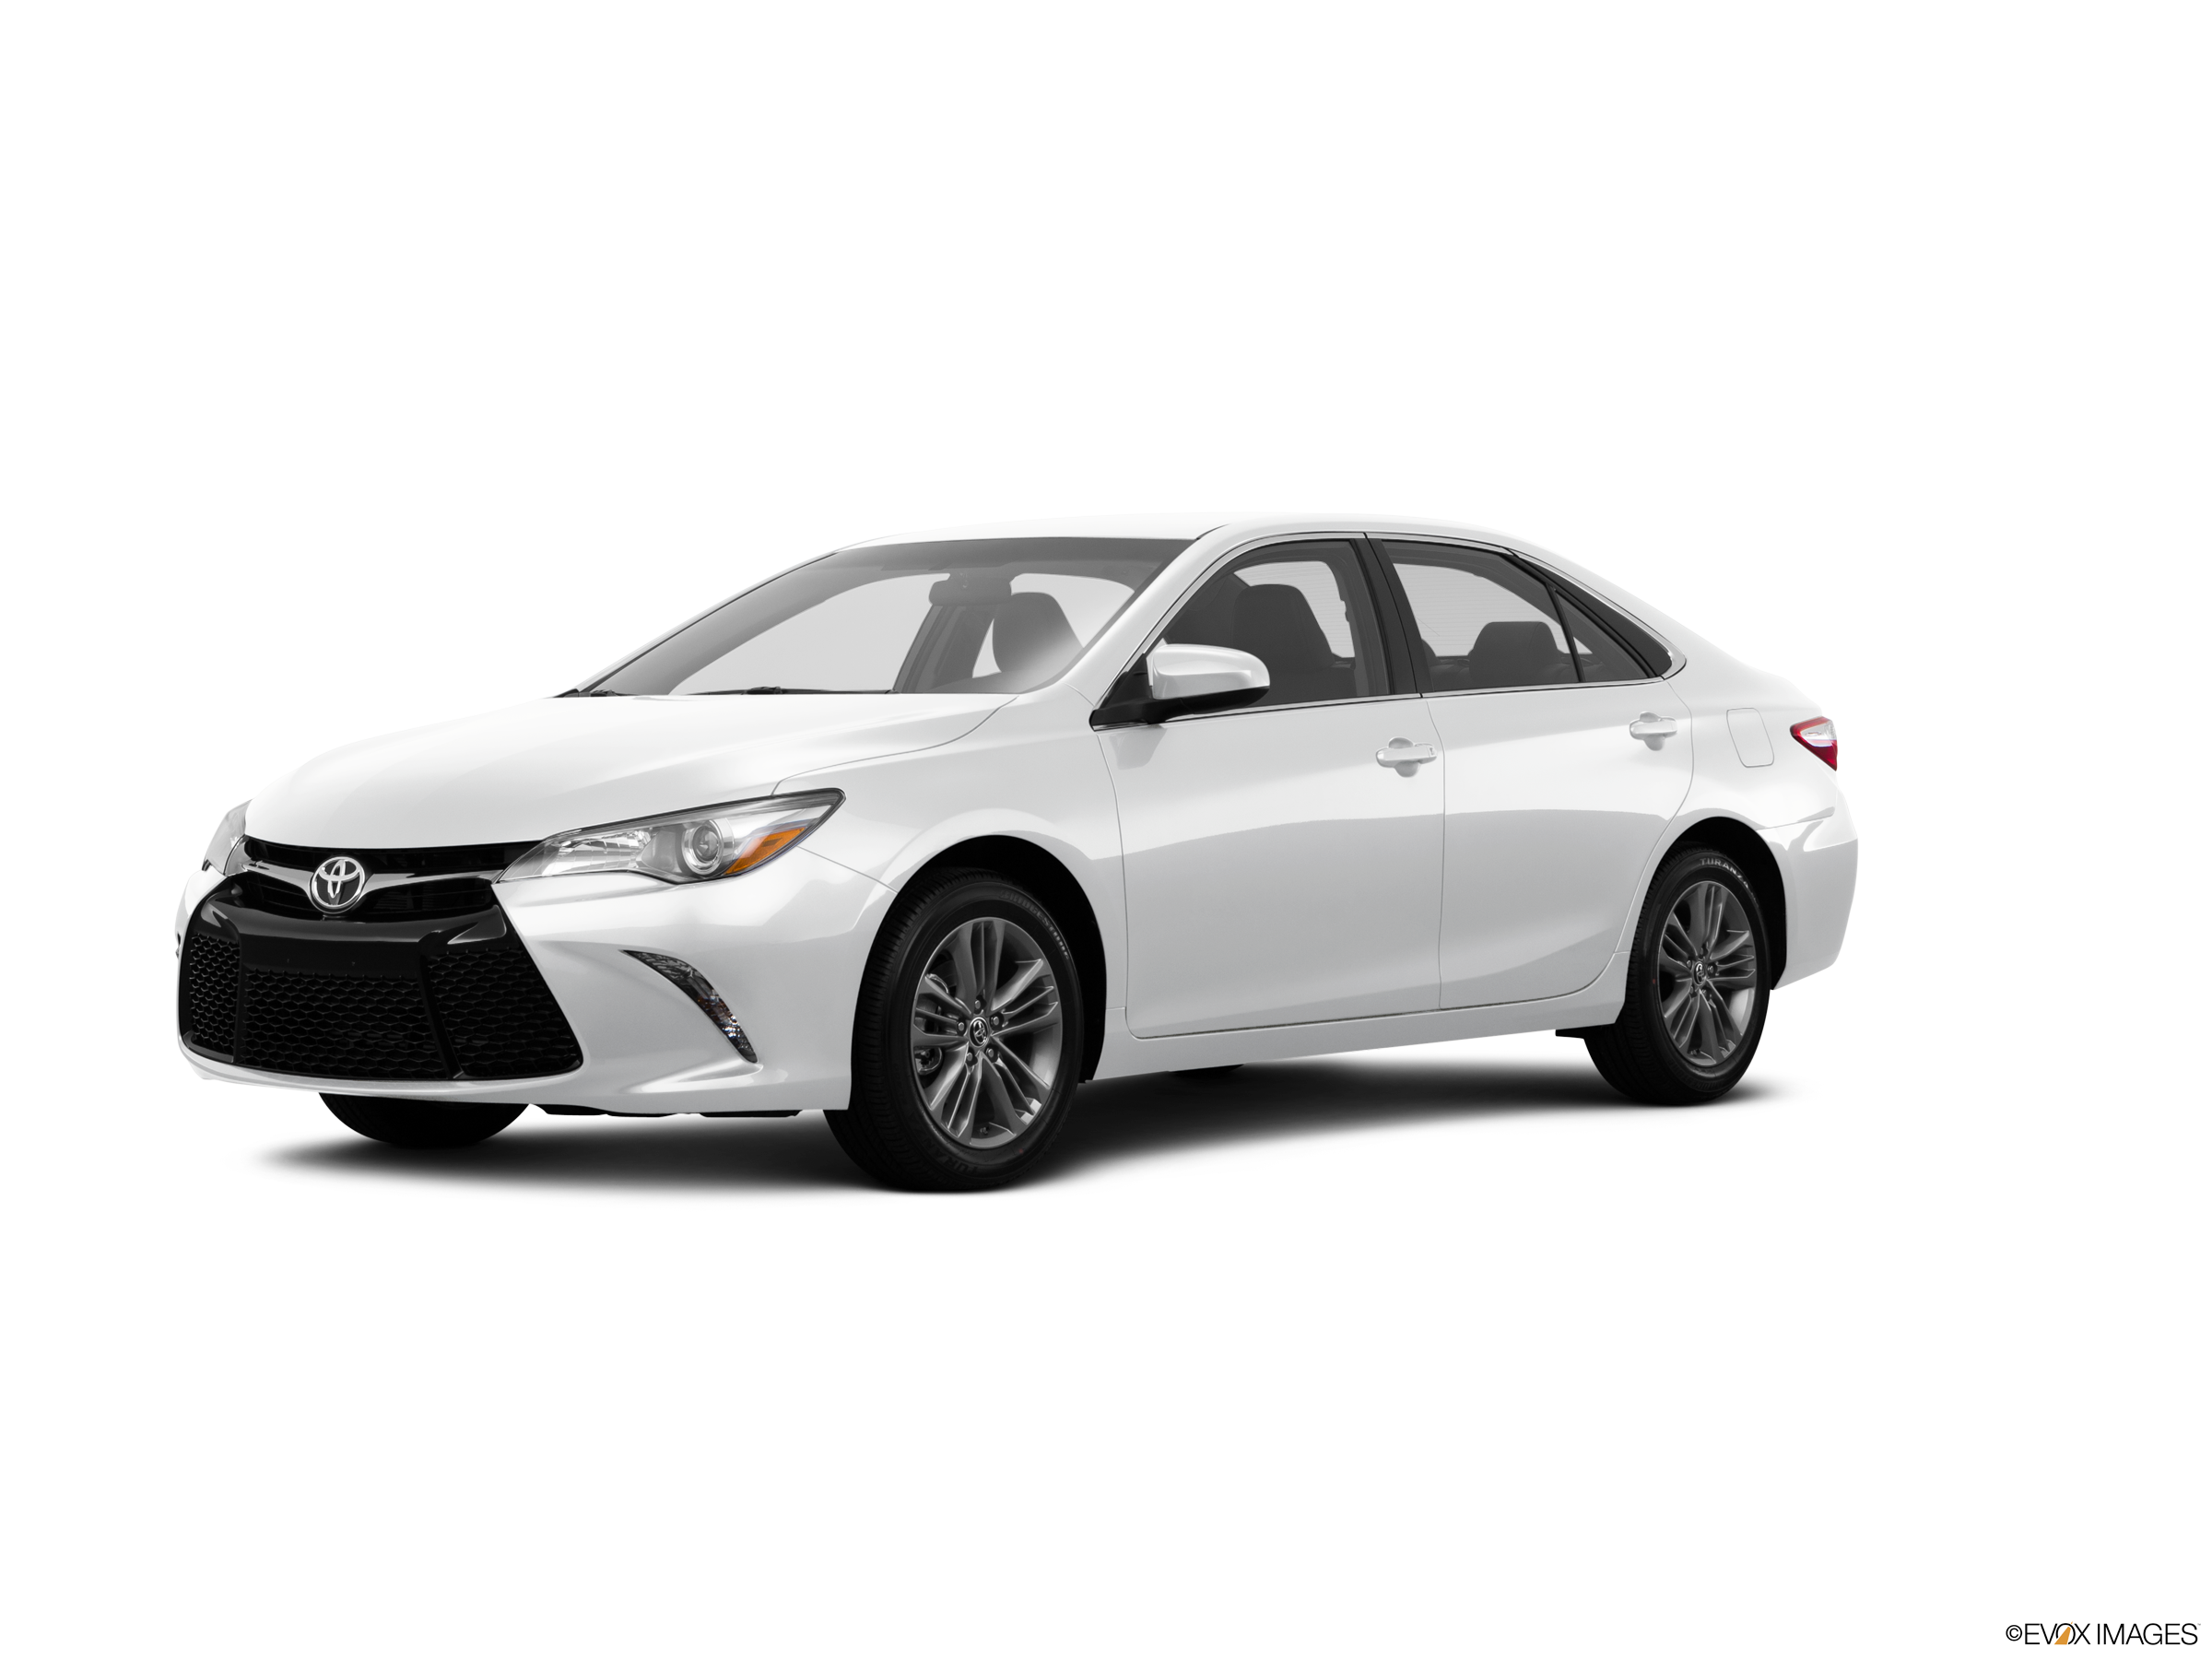 Most Popular Sedans of 2017 - 2017 Toyota Camry